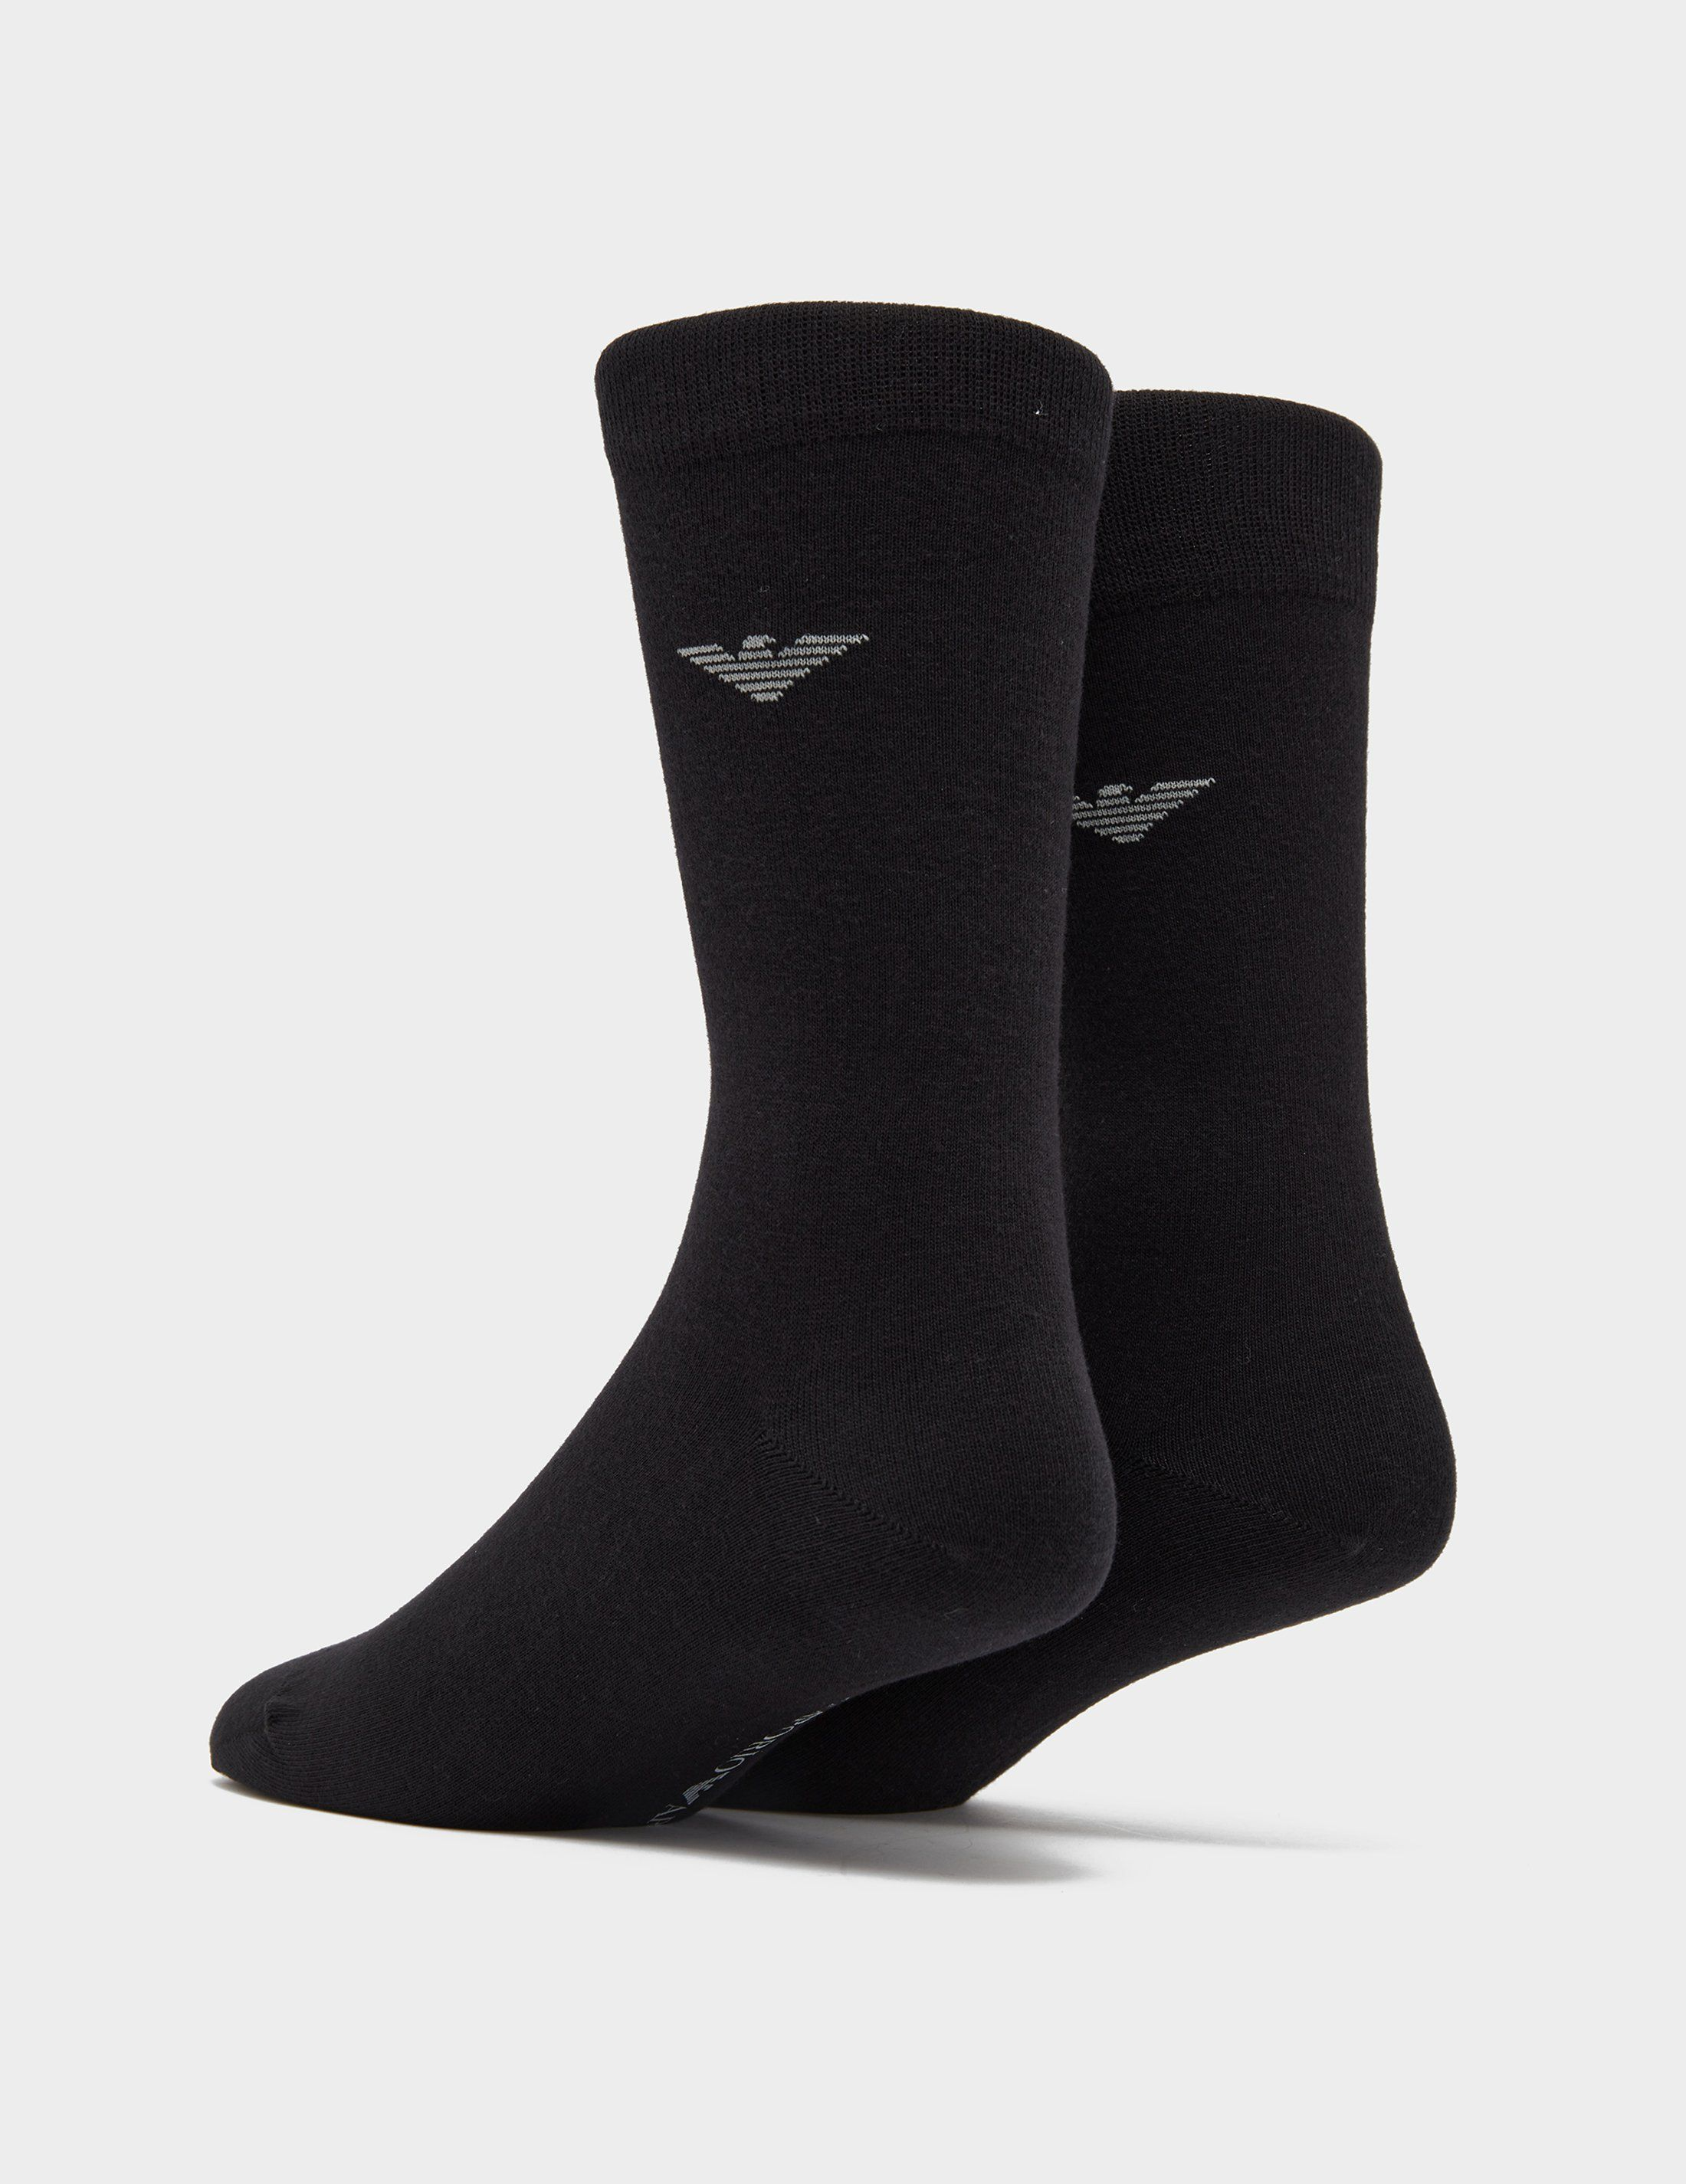 Emporio Armani 2-Pack Eagle Socks